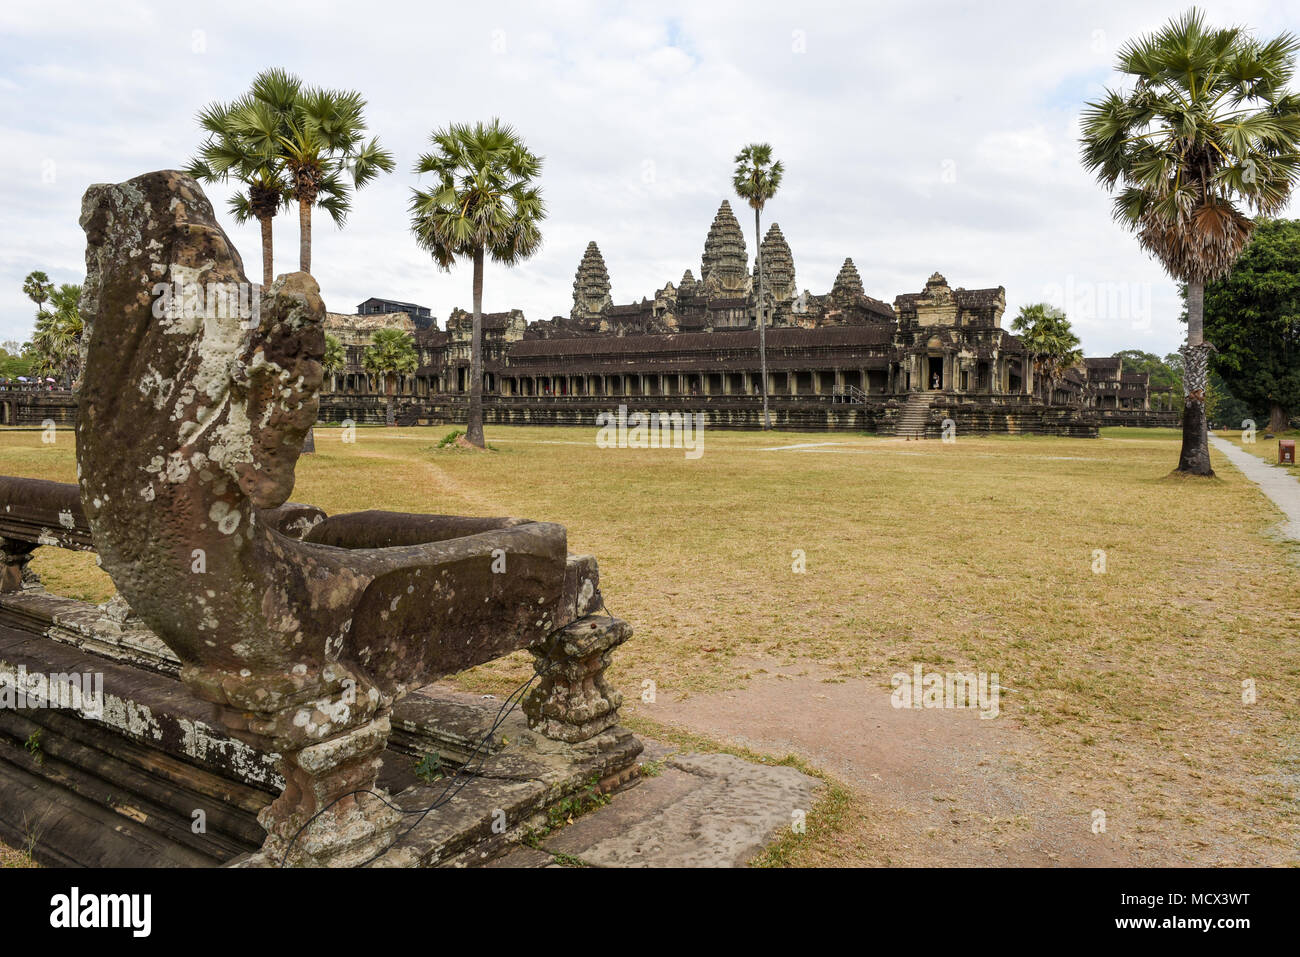 Angkor Wat temple at Siem Reap in Cambodia. - Stock Image